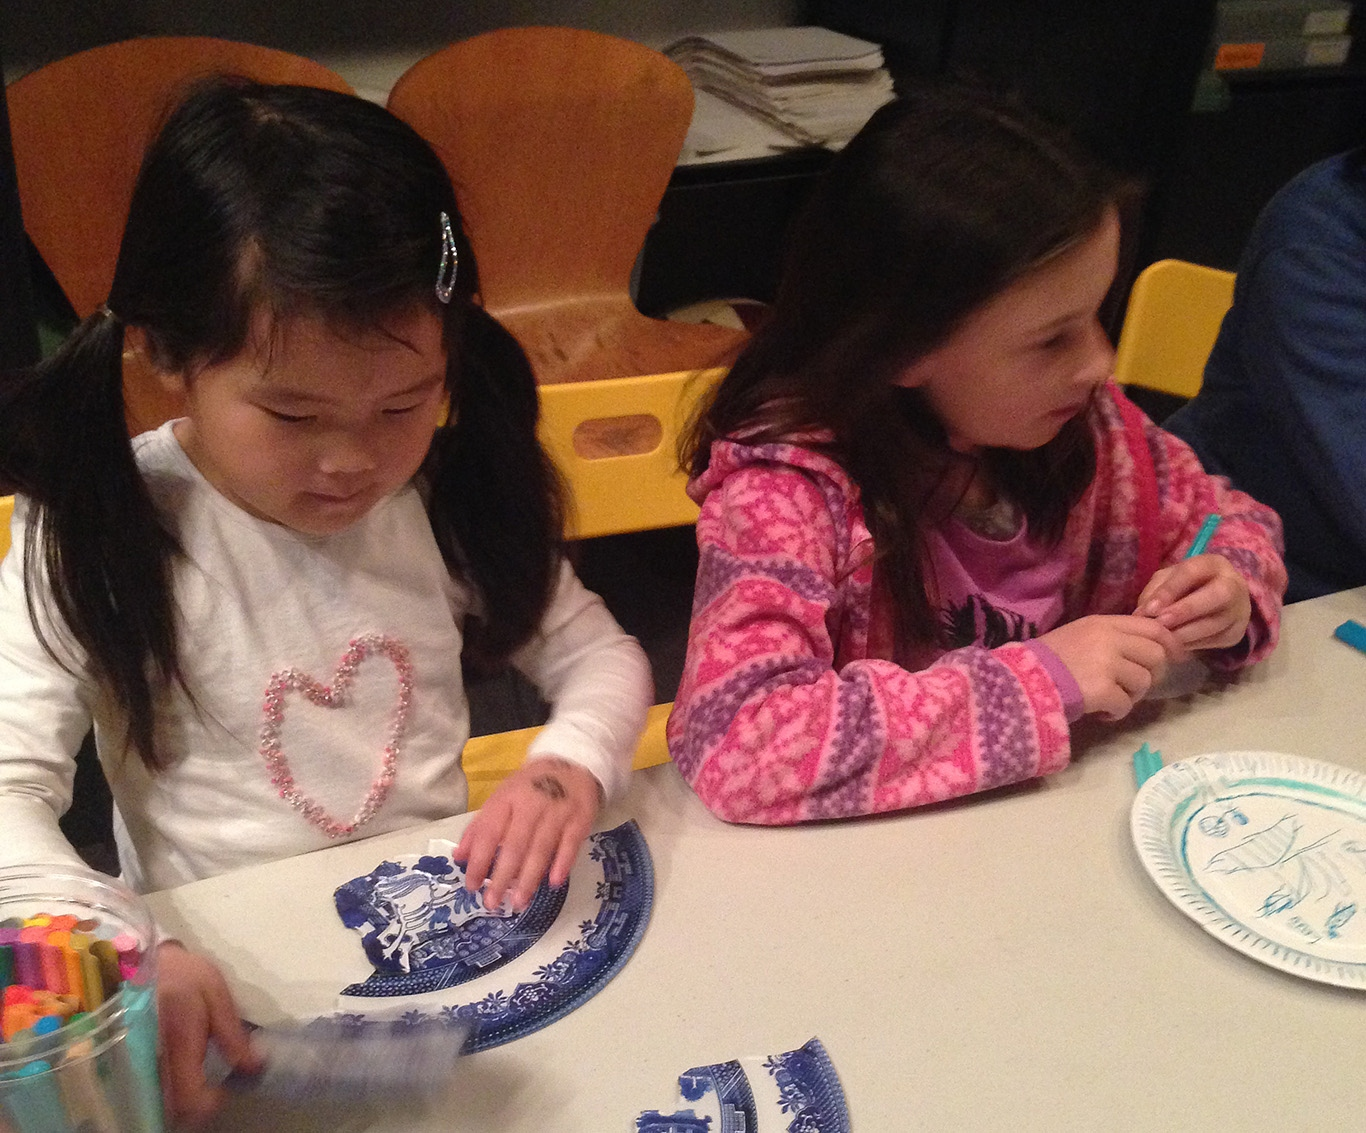 Two girls working on puzzle and drawing activities.